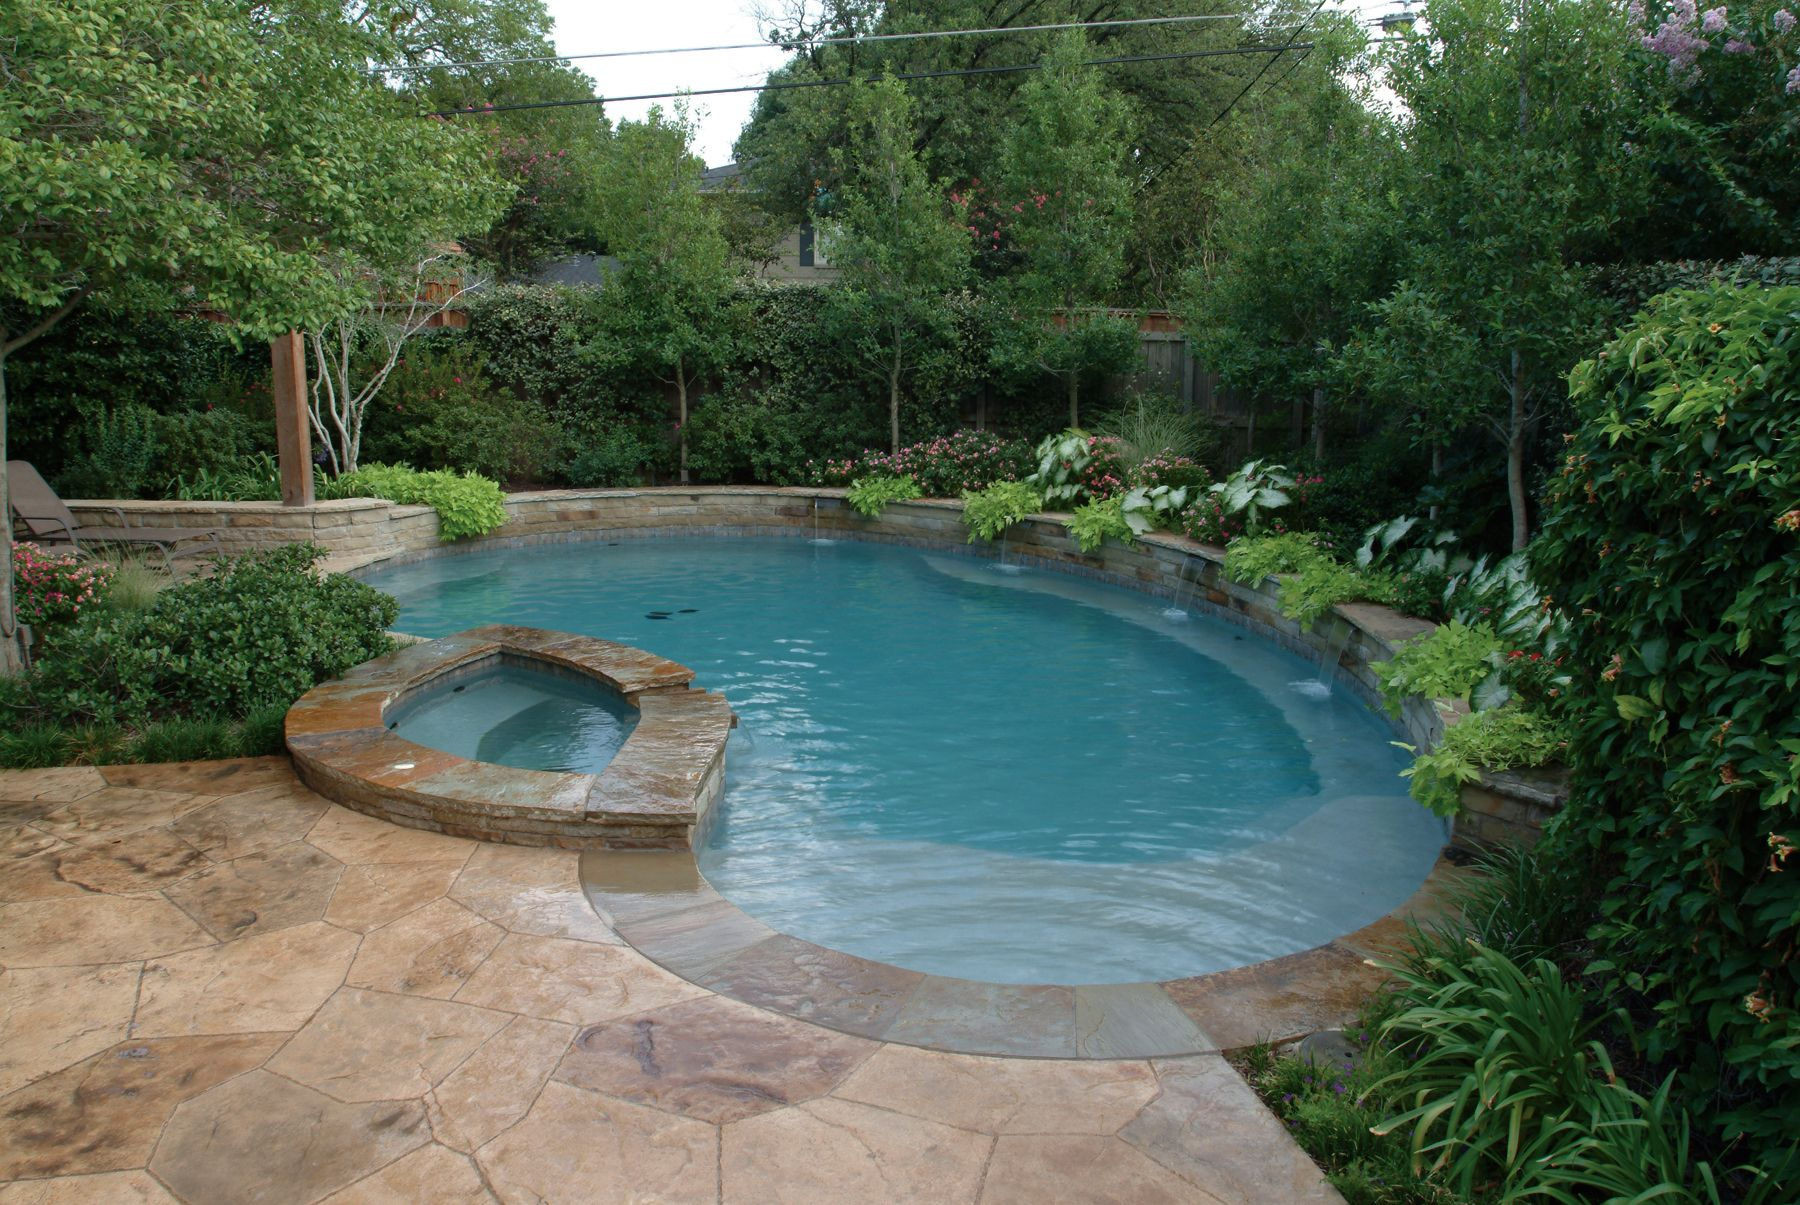 17 best ideas about small inground pool on pinterest small pool ideas small pools and backyard - Pool Designs Ideas